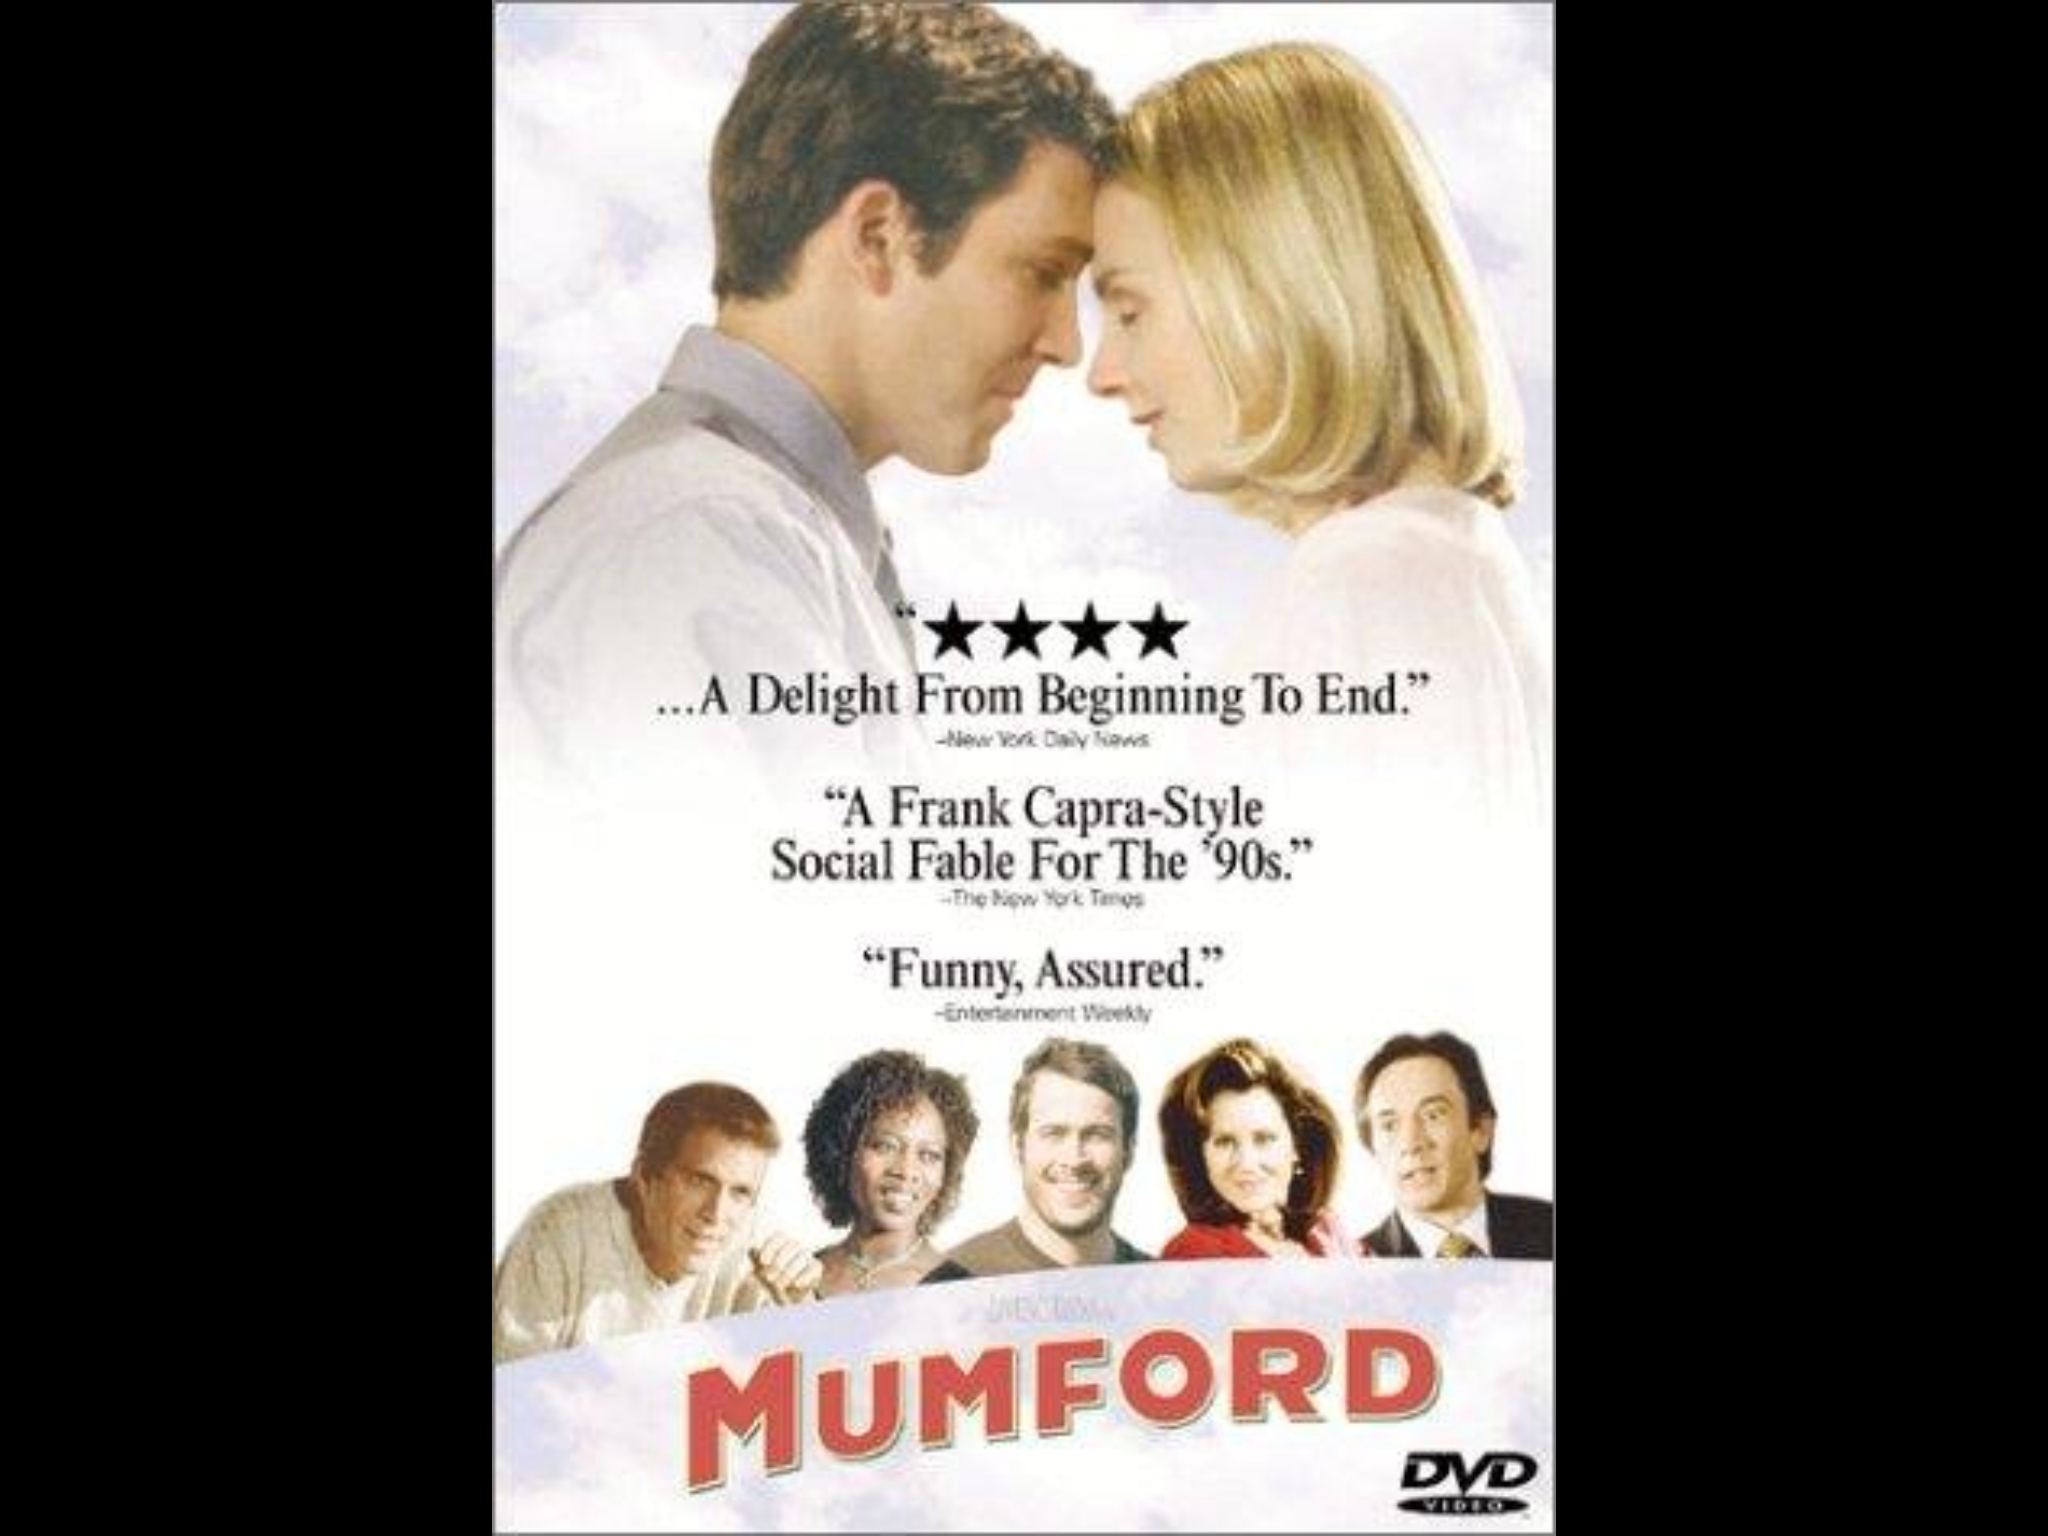 Pin by Nora Charles on Best movies Mumford, Streaming